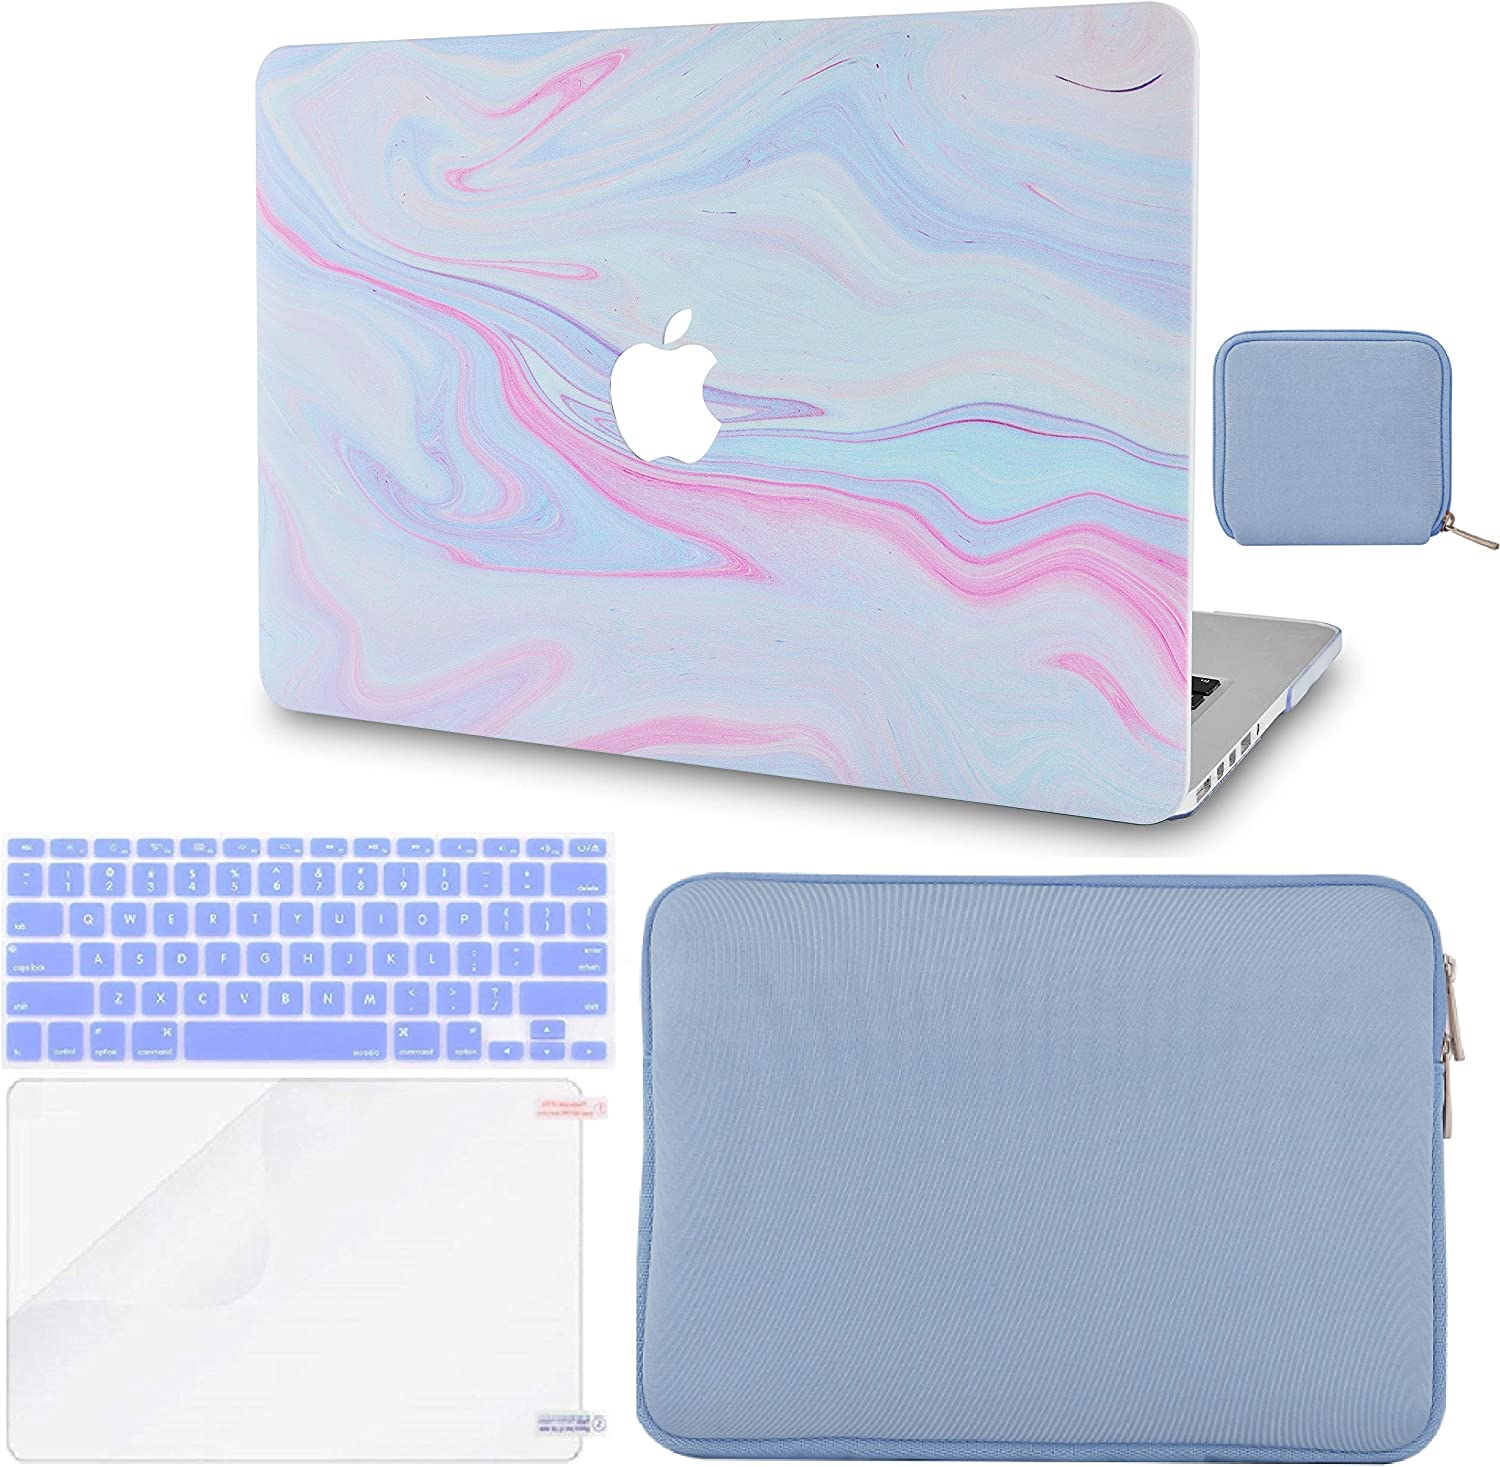 LuvCase 5 in 1 LaptopCase for MacBook Pro 16 Touch Bar (2020/2019) A2141 HardShellCover, Slim Sleeve, Pouch, Keyboard Cover & Screen Protector (Purple Marble with Pink Veins)